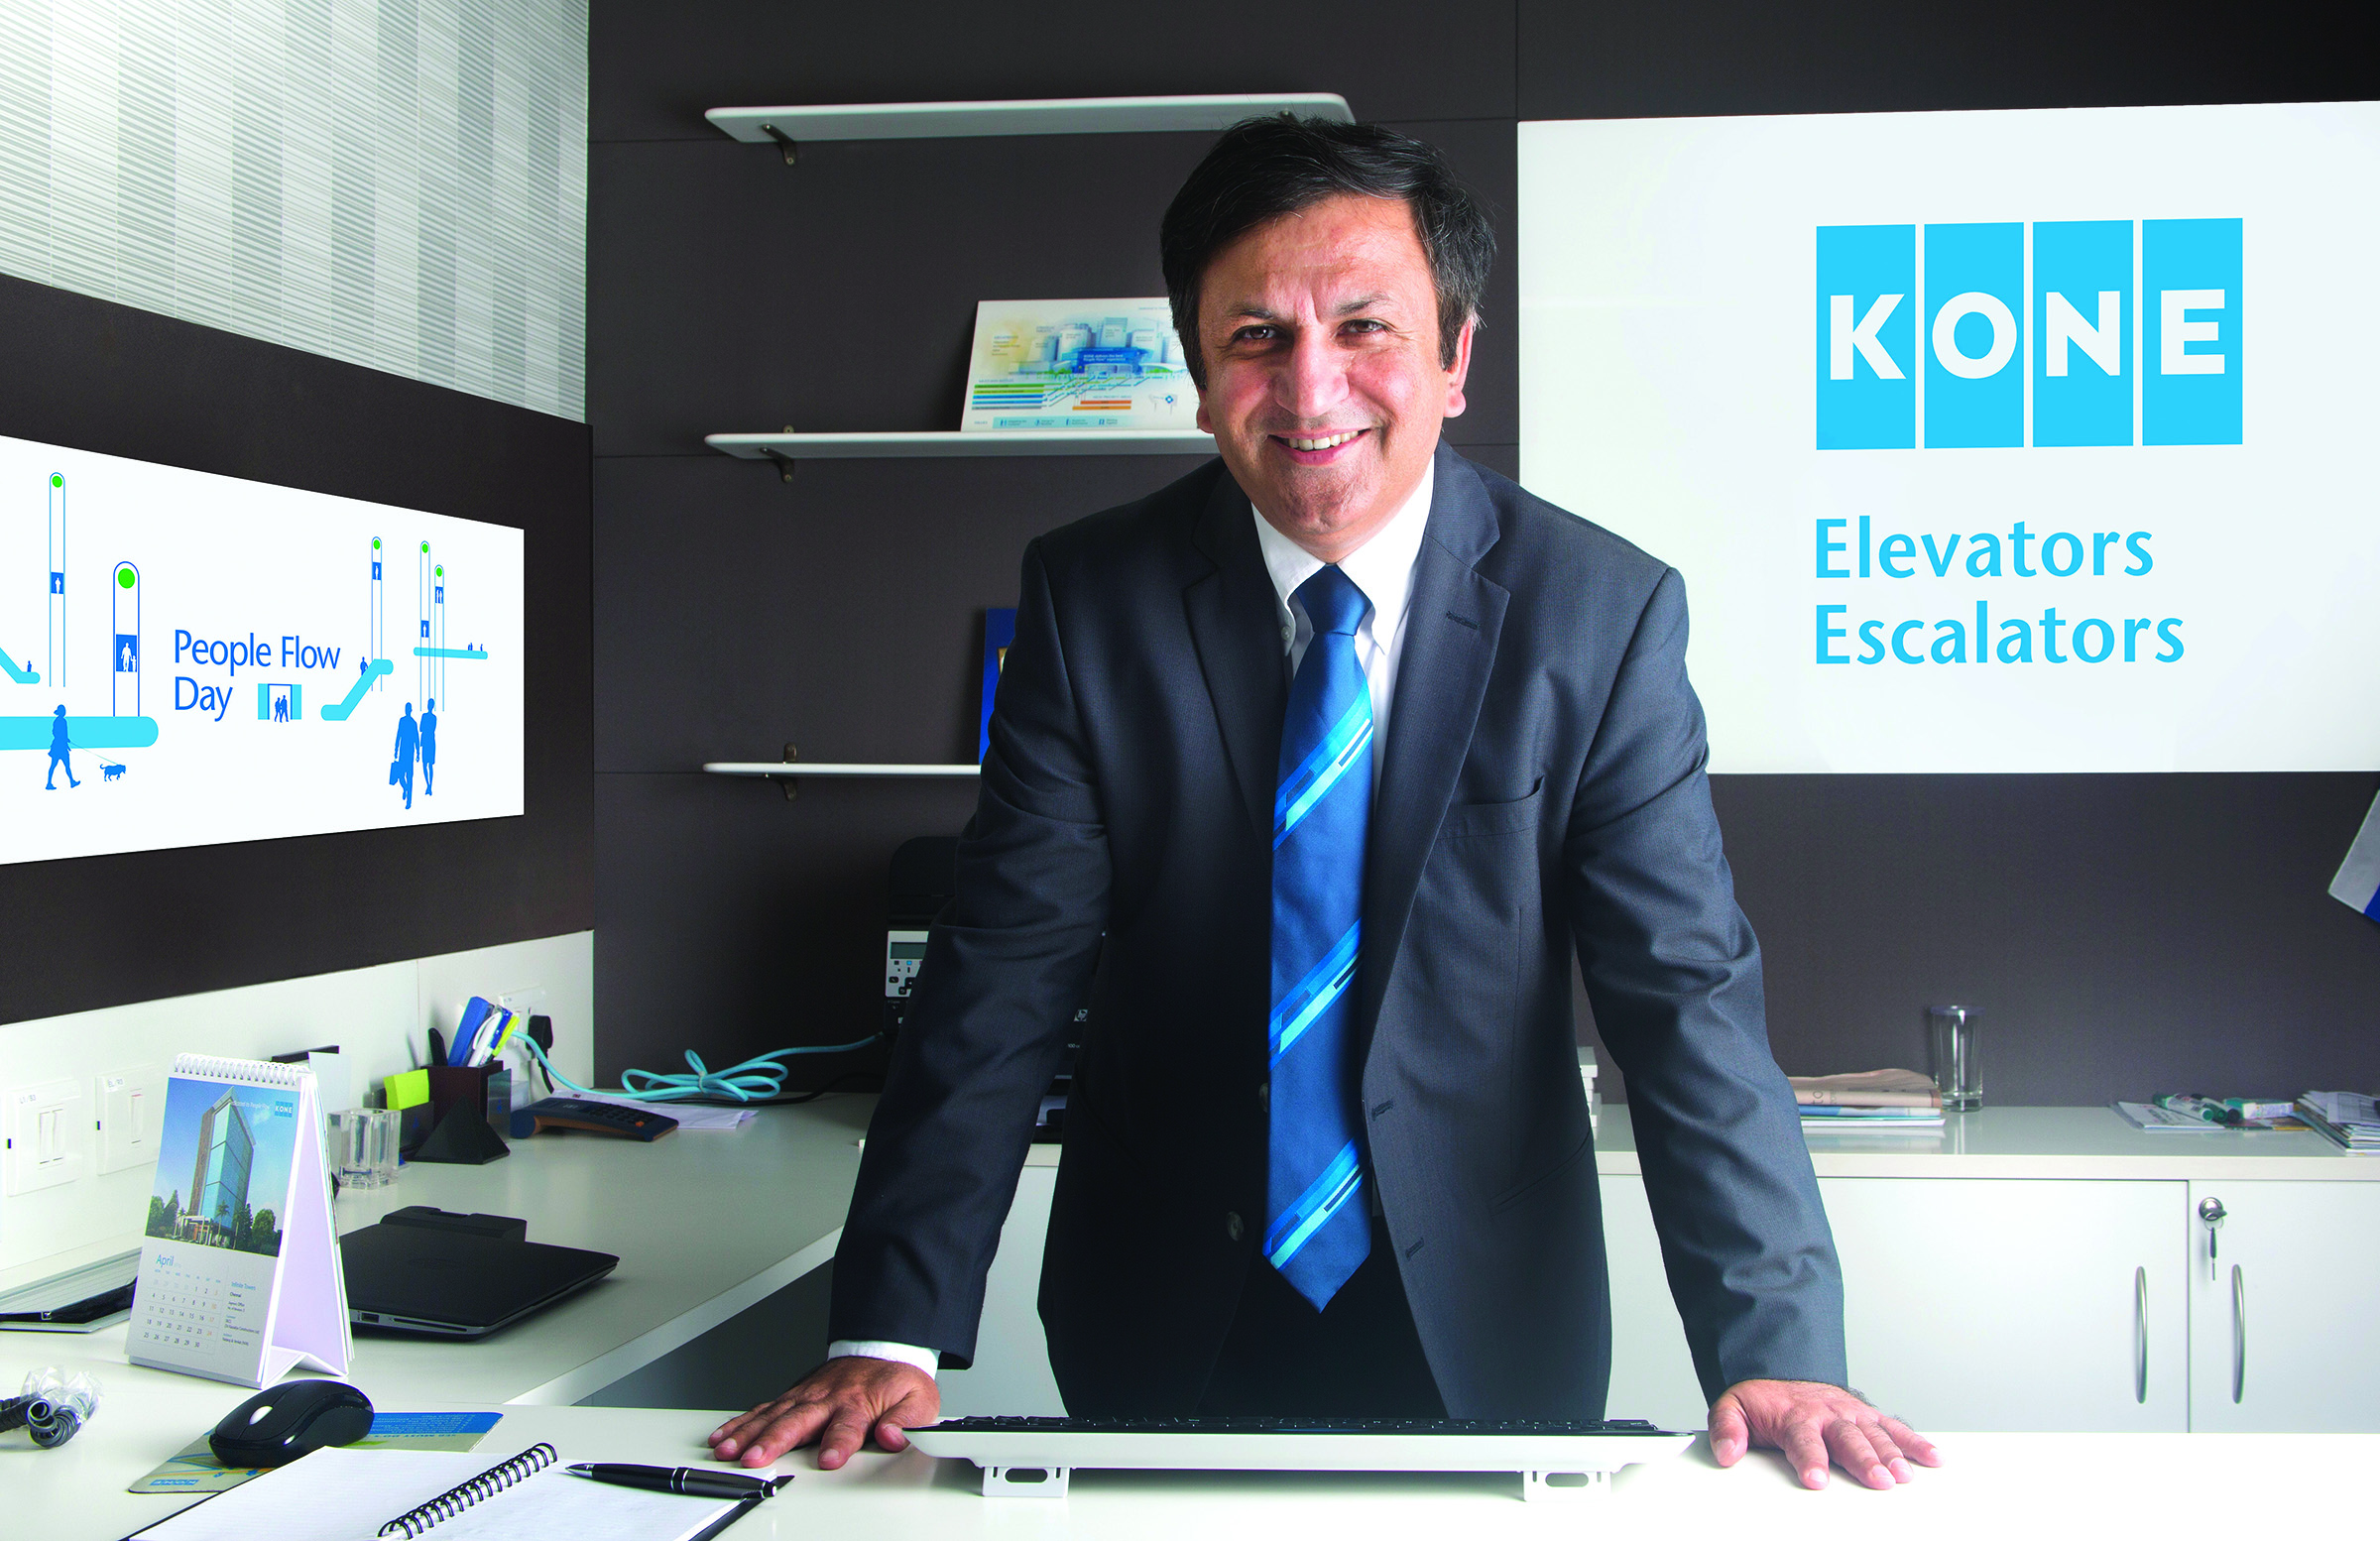 Requirement for elevators is likely to be quite high - AMIT GOSSAIN, Managing Director, KONE Elevator India